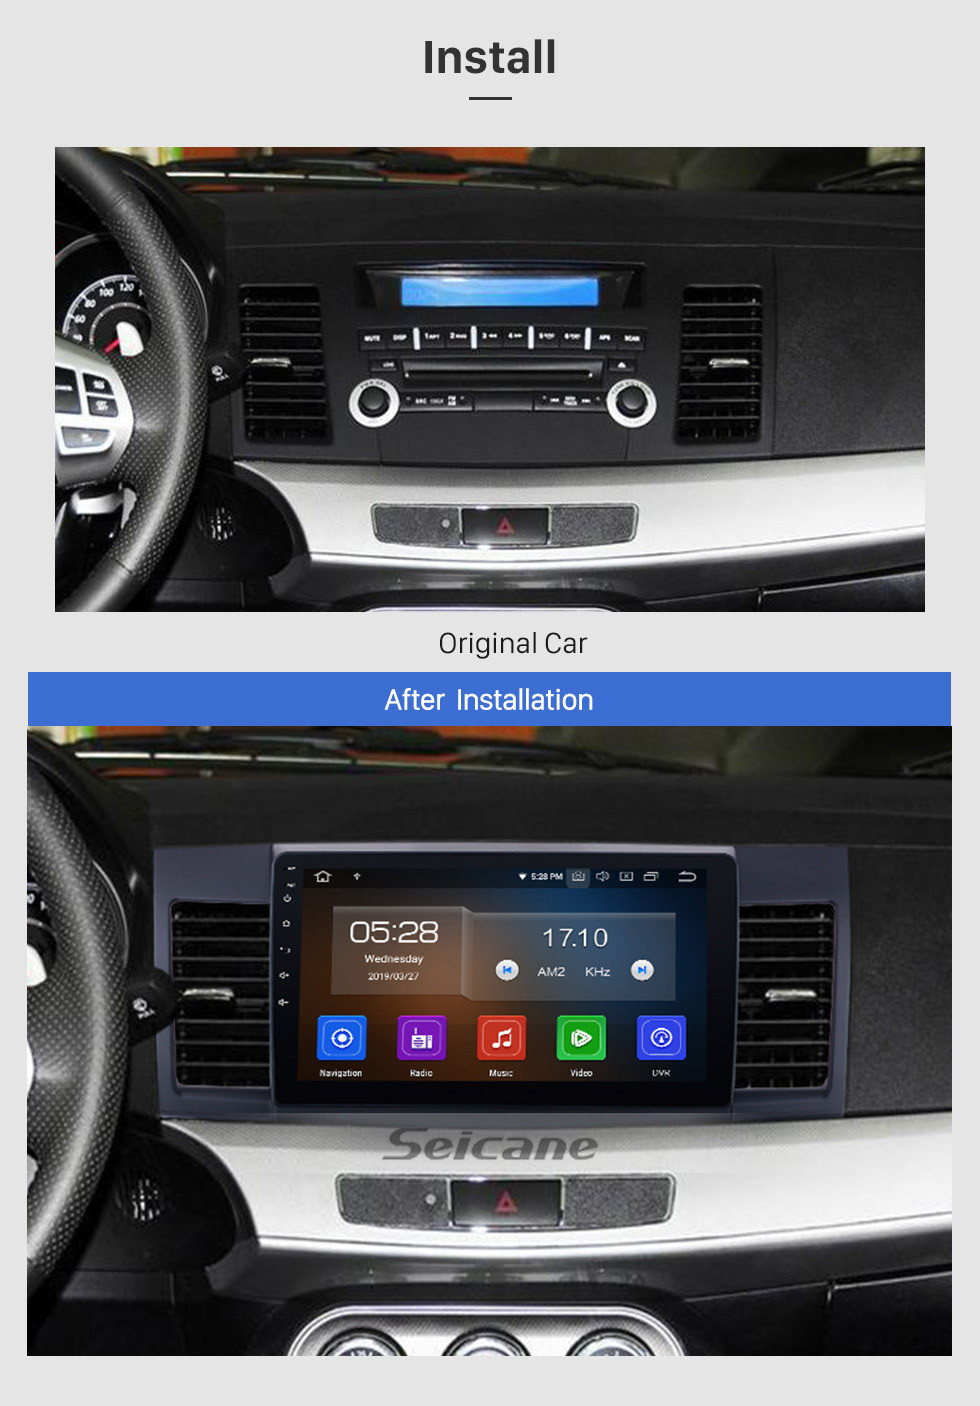 Seicane 2007-2015 Mitsubishi LANCER Android 9.0 Radio DVD player GPS navigation system Bluetooth HD 1024*600 touch screen Mirror link OBD2 DVR Rearview camera TV 1080P Video 3G WIFI Steering Wheel Control USB